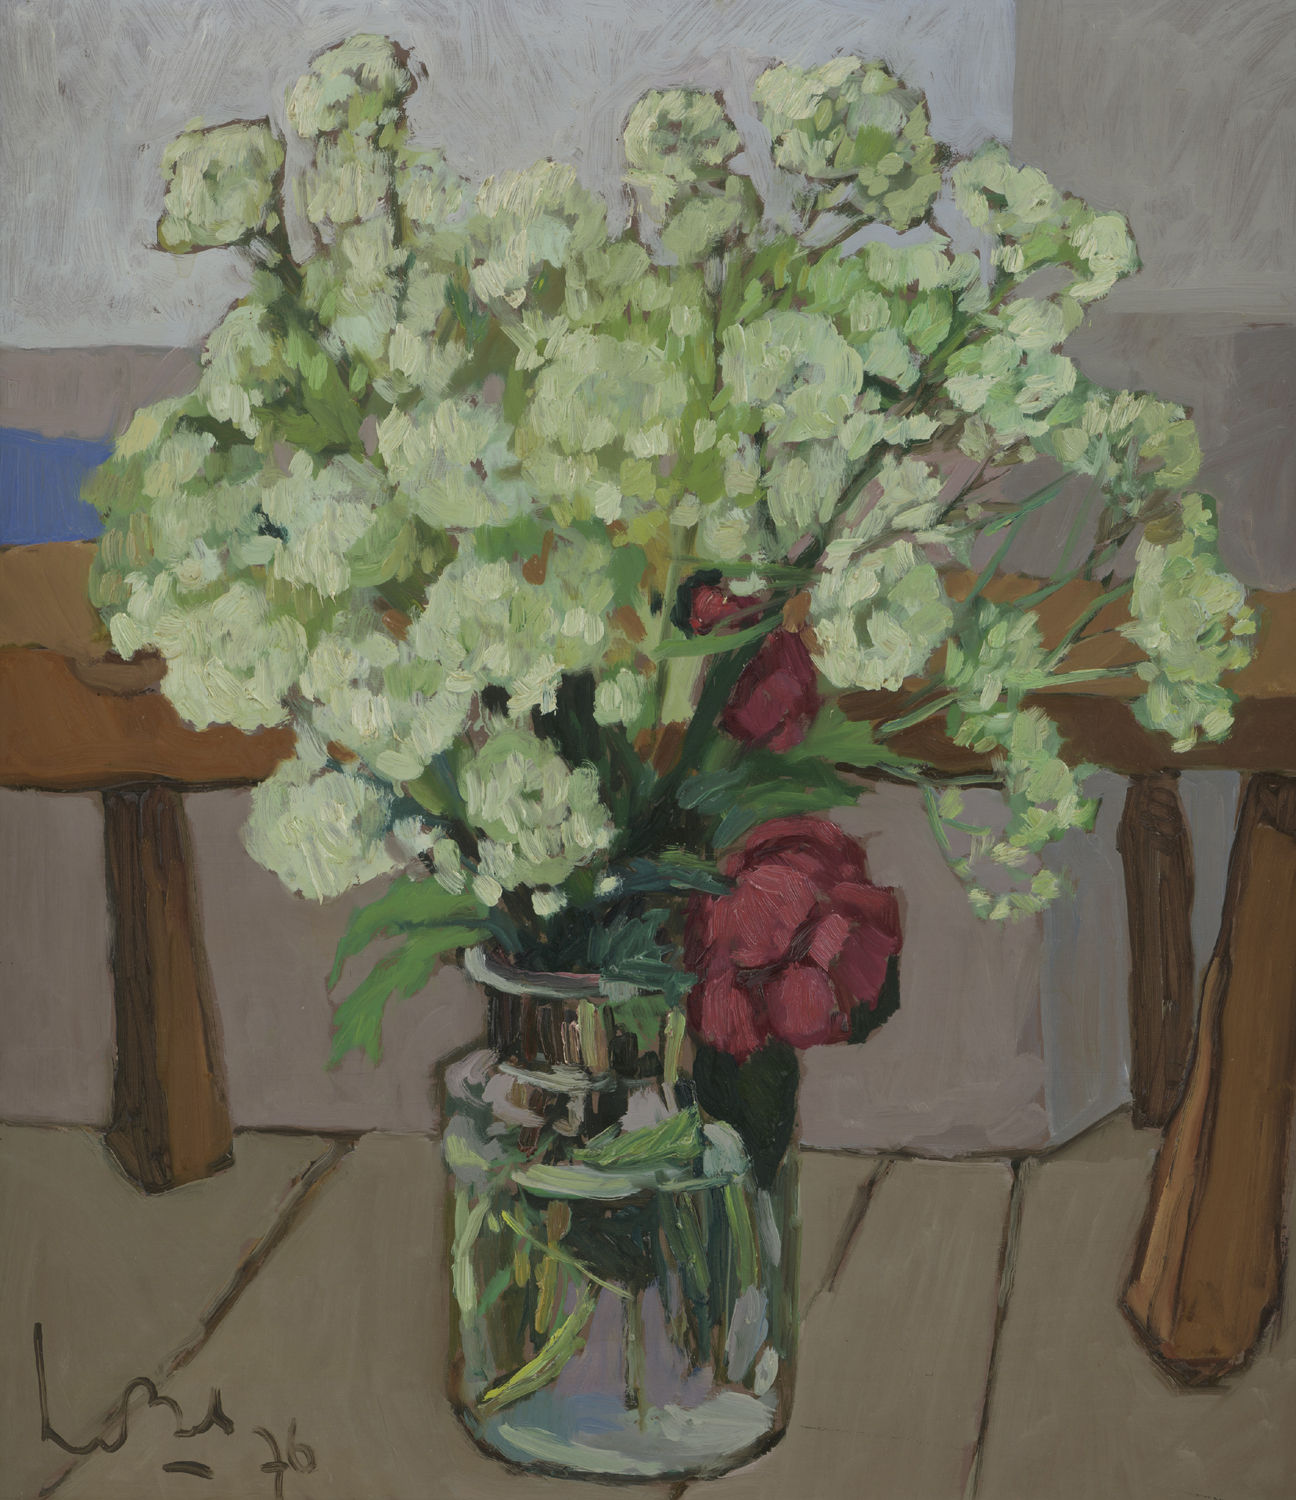 Kees Bol | A still life with cow parsley and peony | Kunsthandel Bies | Bies Gallery